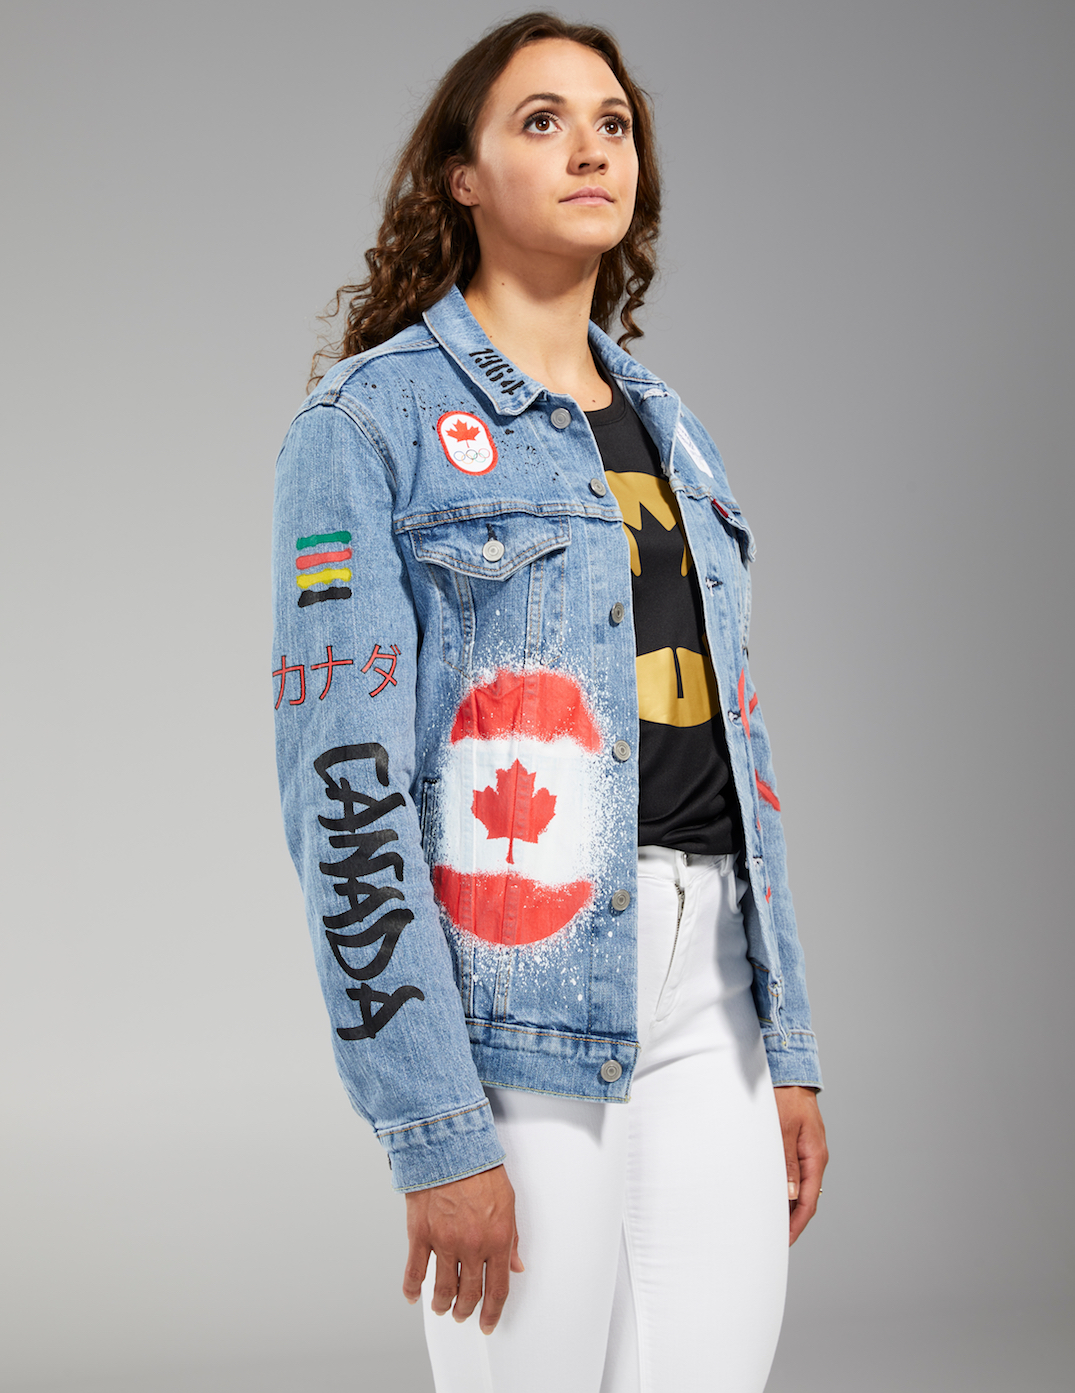 Uniforme olímpico canadiense